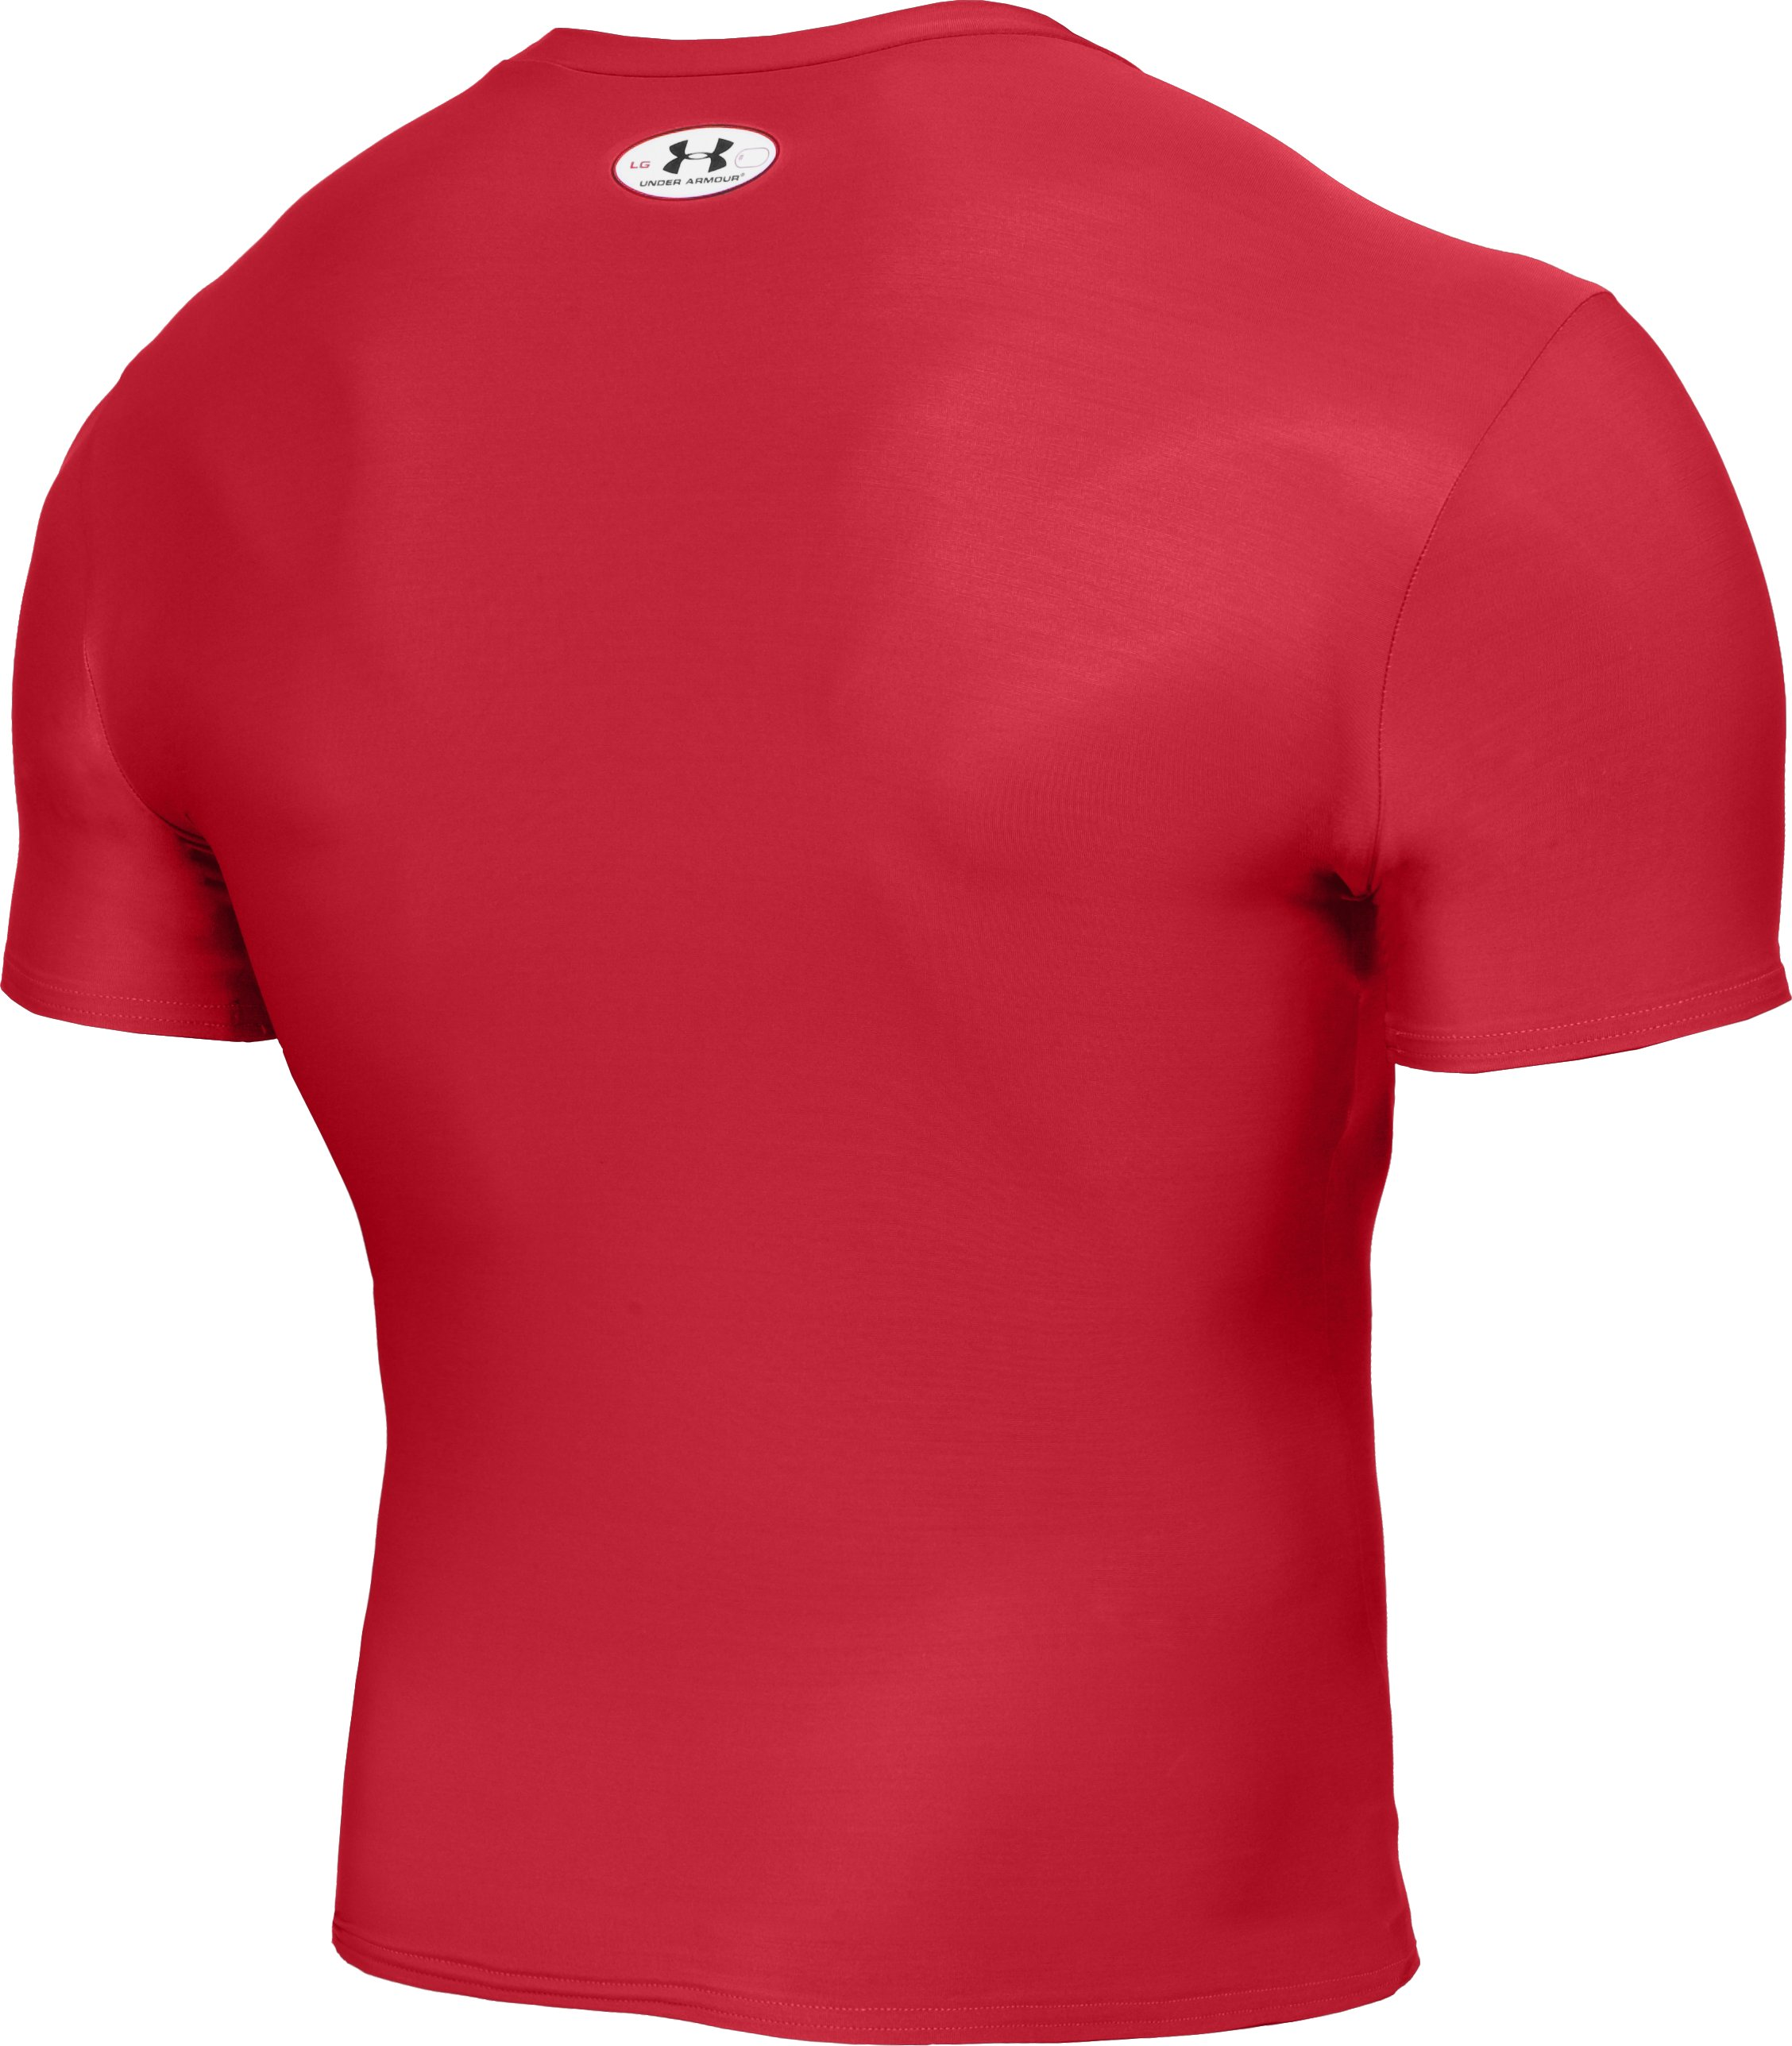 Men's HeatGear® Compression Short Sleeve T-Shirt, Red